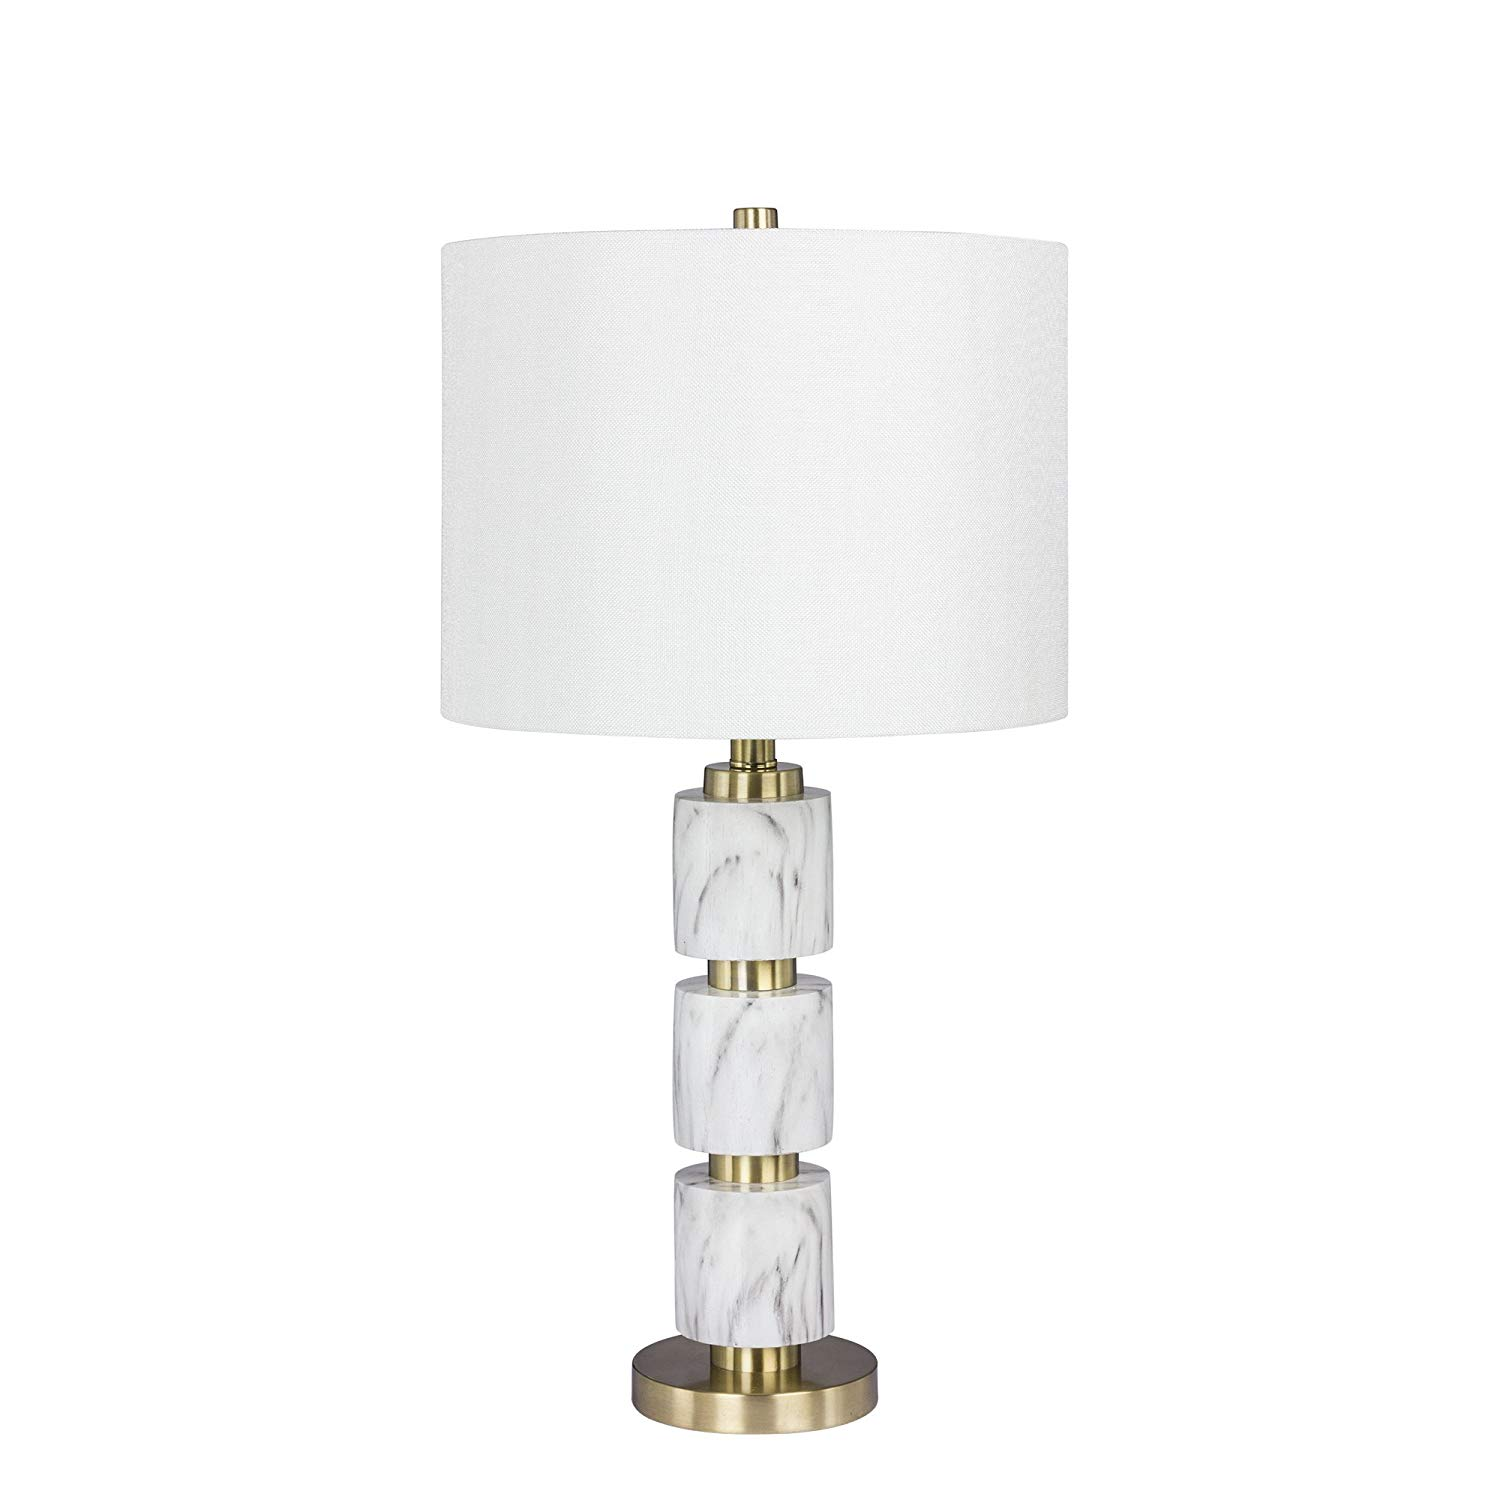 Martin Richard W-6237WHT Fangio Lighting's #6237WHT 27 in. Stacked, Smooth Resin and Metal Table Lamp in a White Faux Marble Finish, 27.00, White Faux Marble with Satin Brass